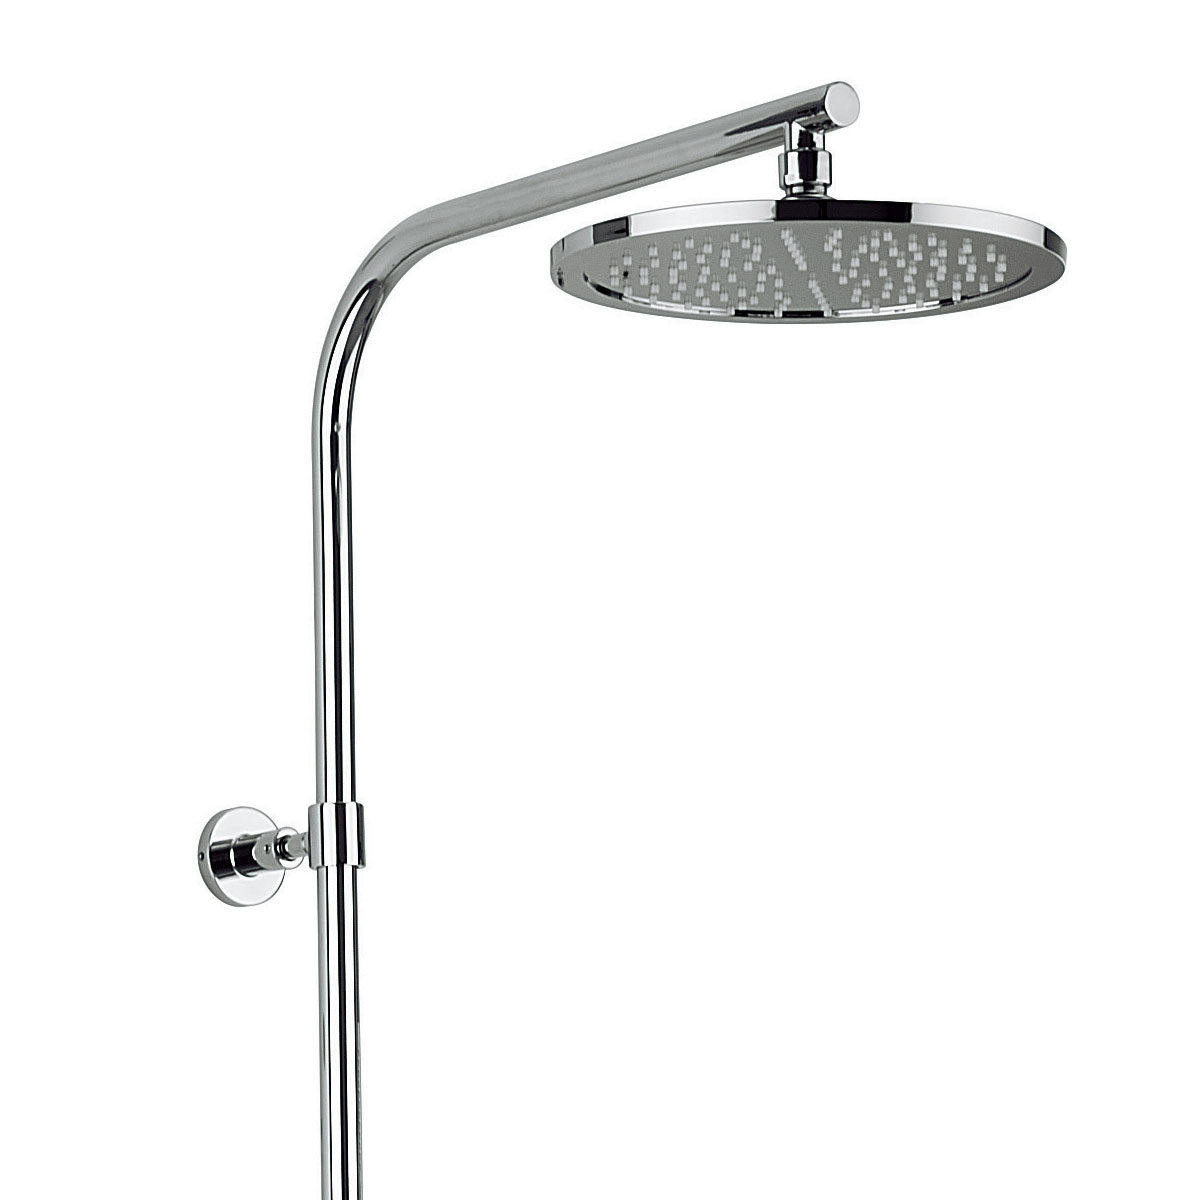 Round 250mm Cool To Touch Shower Kit With Handheld: Fixed Head & Single Mode Shower Kit